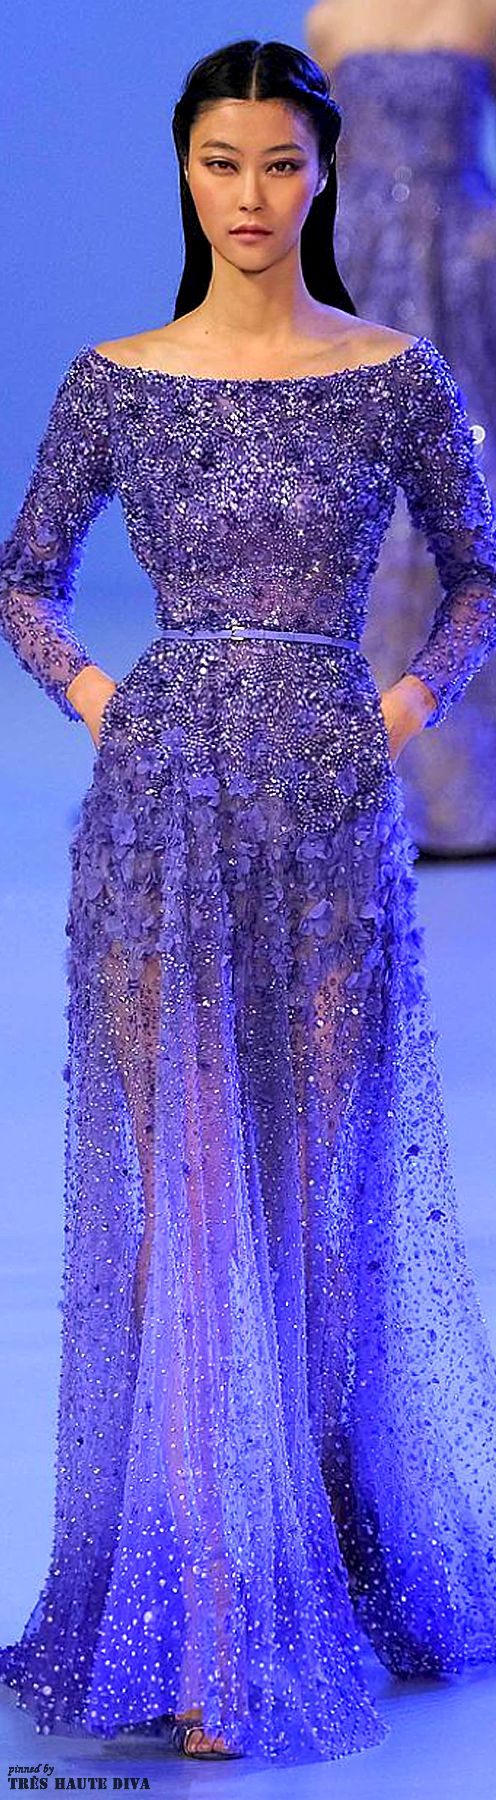 Elie Saab Spring 2014 Couture. Blue dress. Glitter.